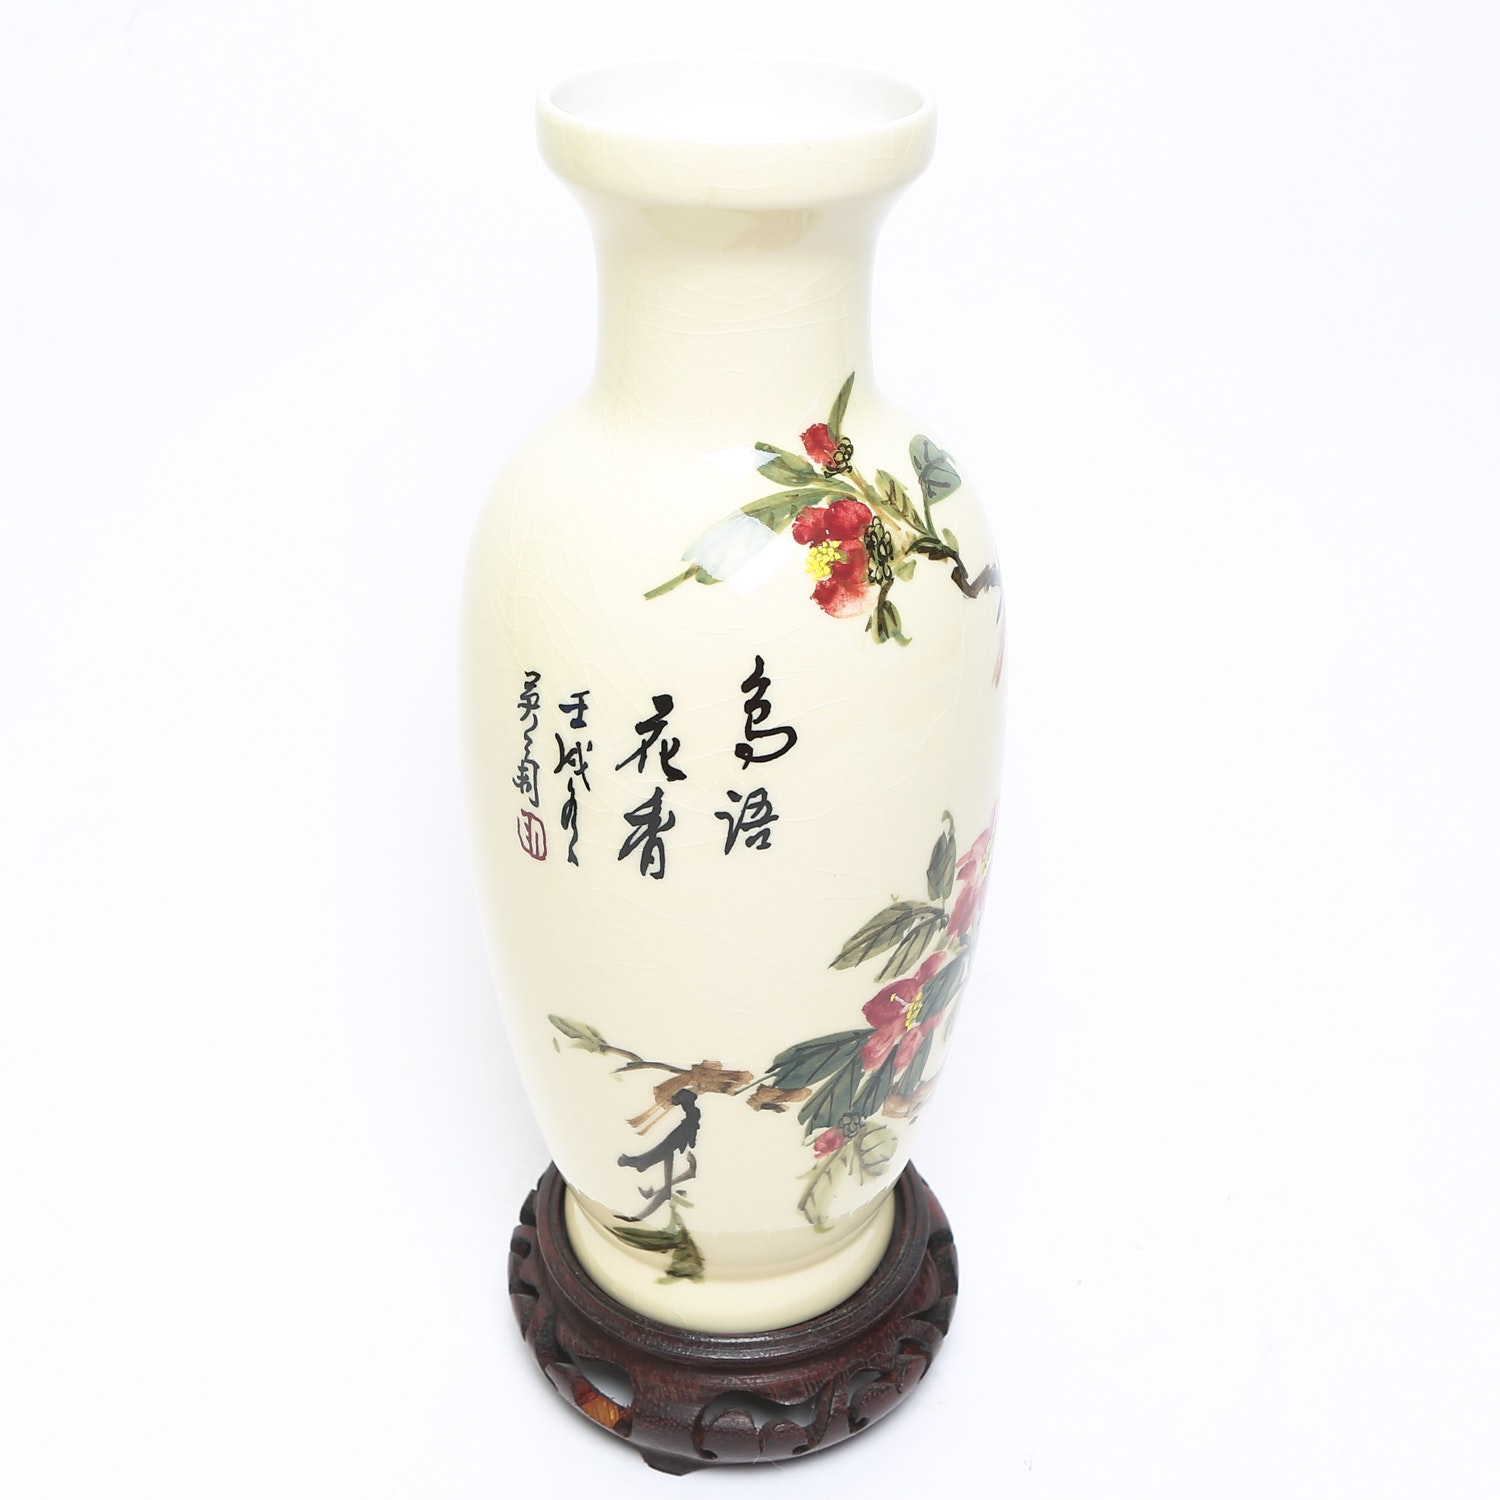 Asian Porcelain Vase with Wooden Stand